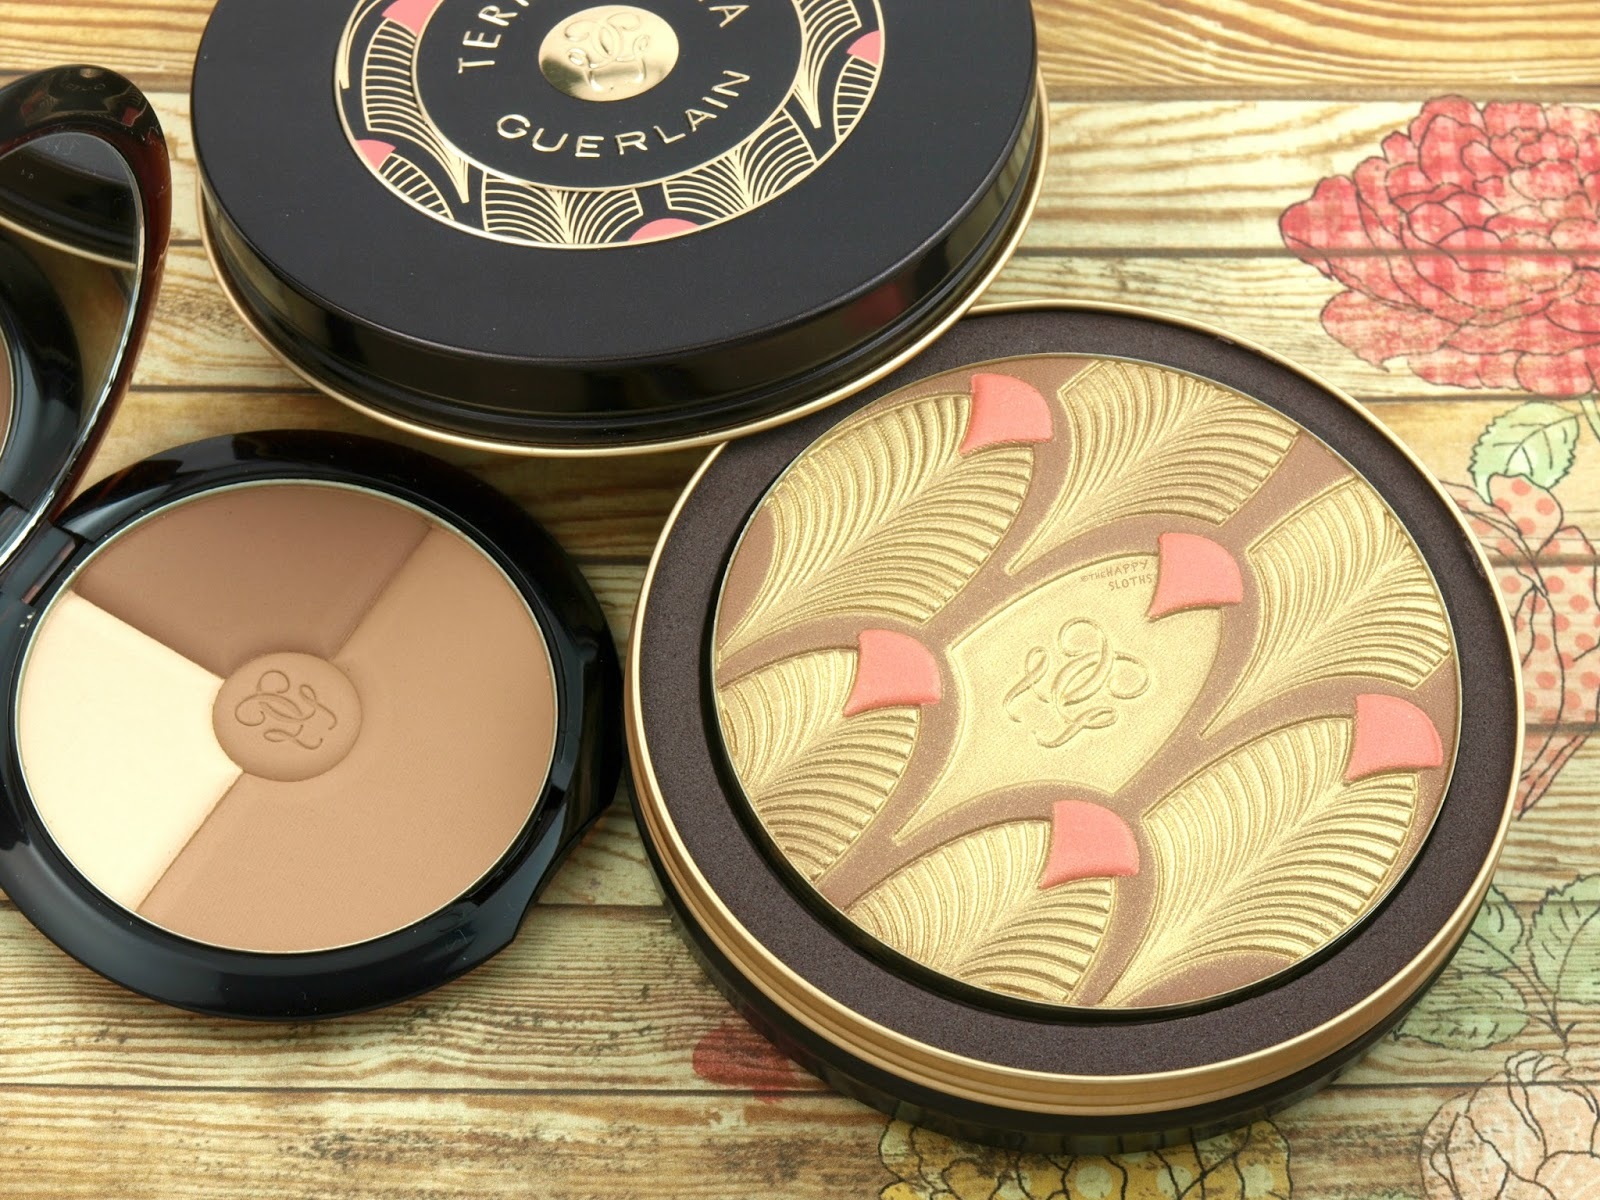 Guerlain Terracotta Sun Trio & Chic Tropic Bronzer: Review and Swatches